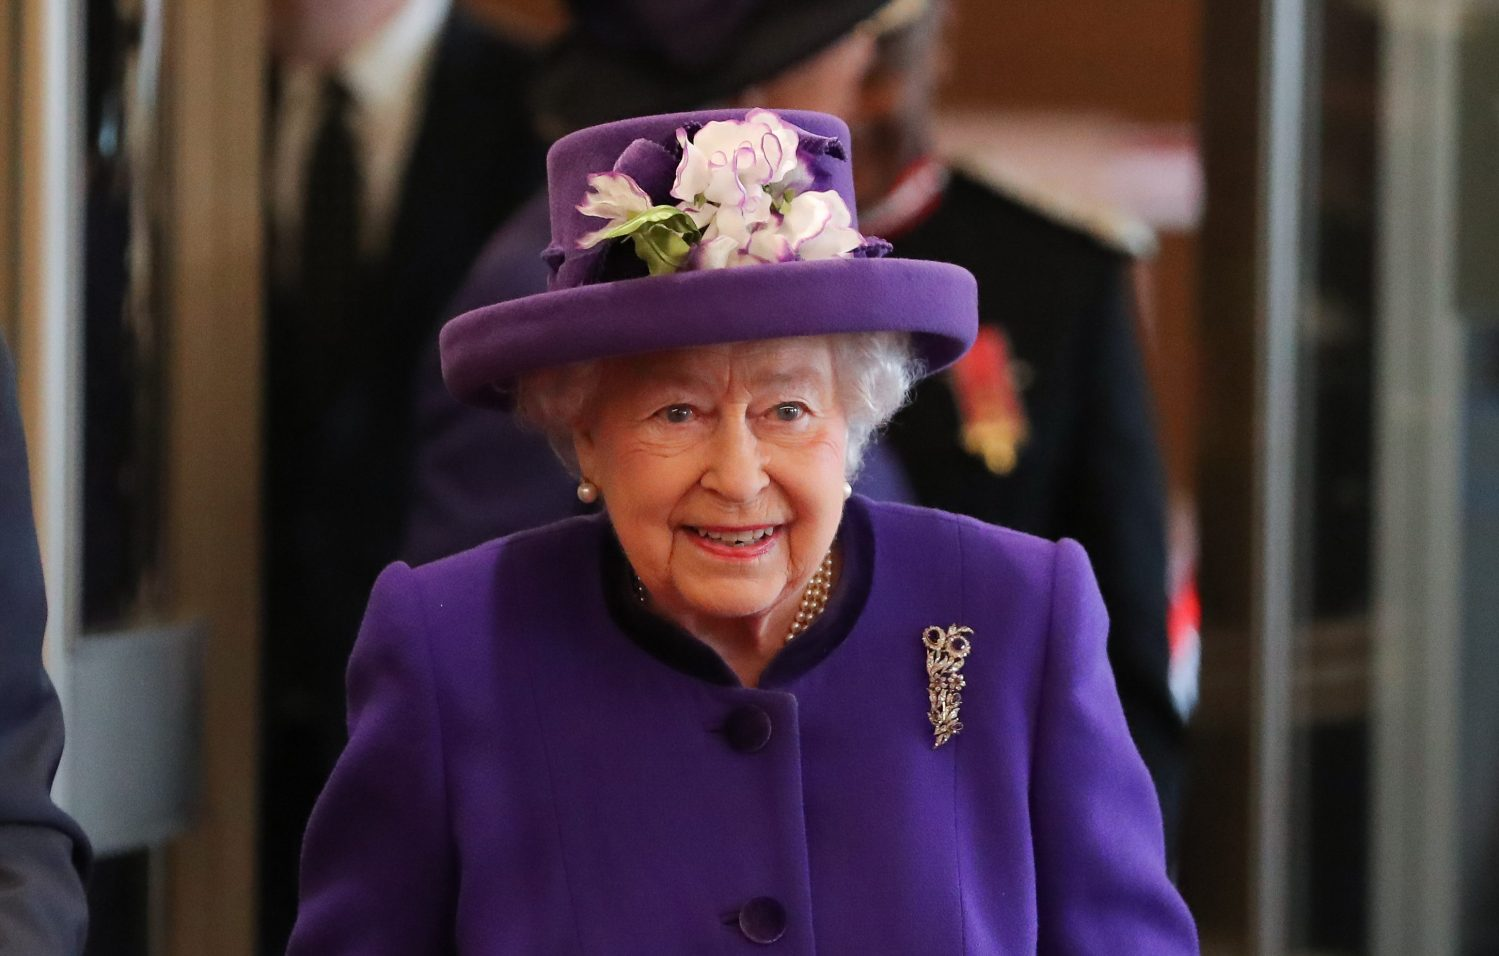 The Queen visited the International Maritime Organisation in London  to mark the 70th anniversary of its formation. Picture by ROTA / i-Images